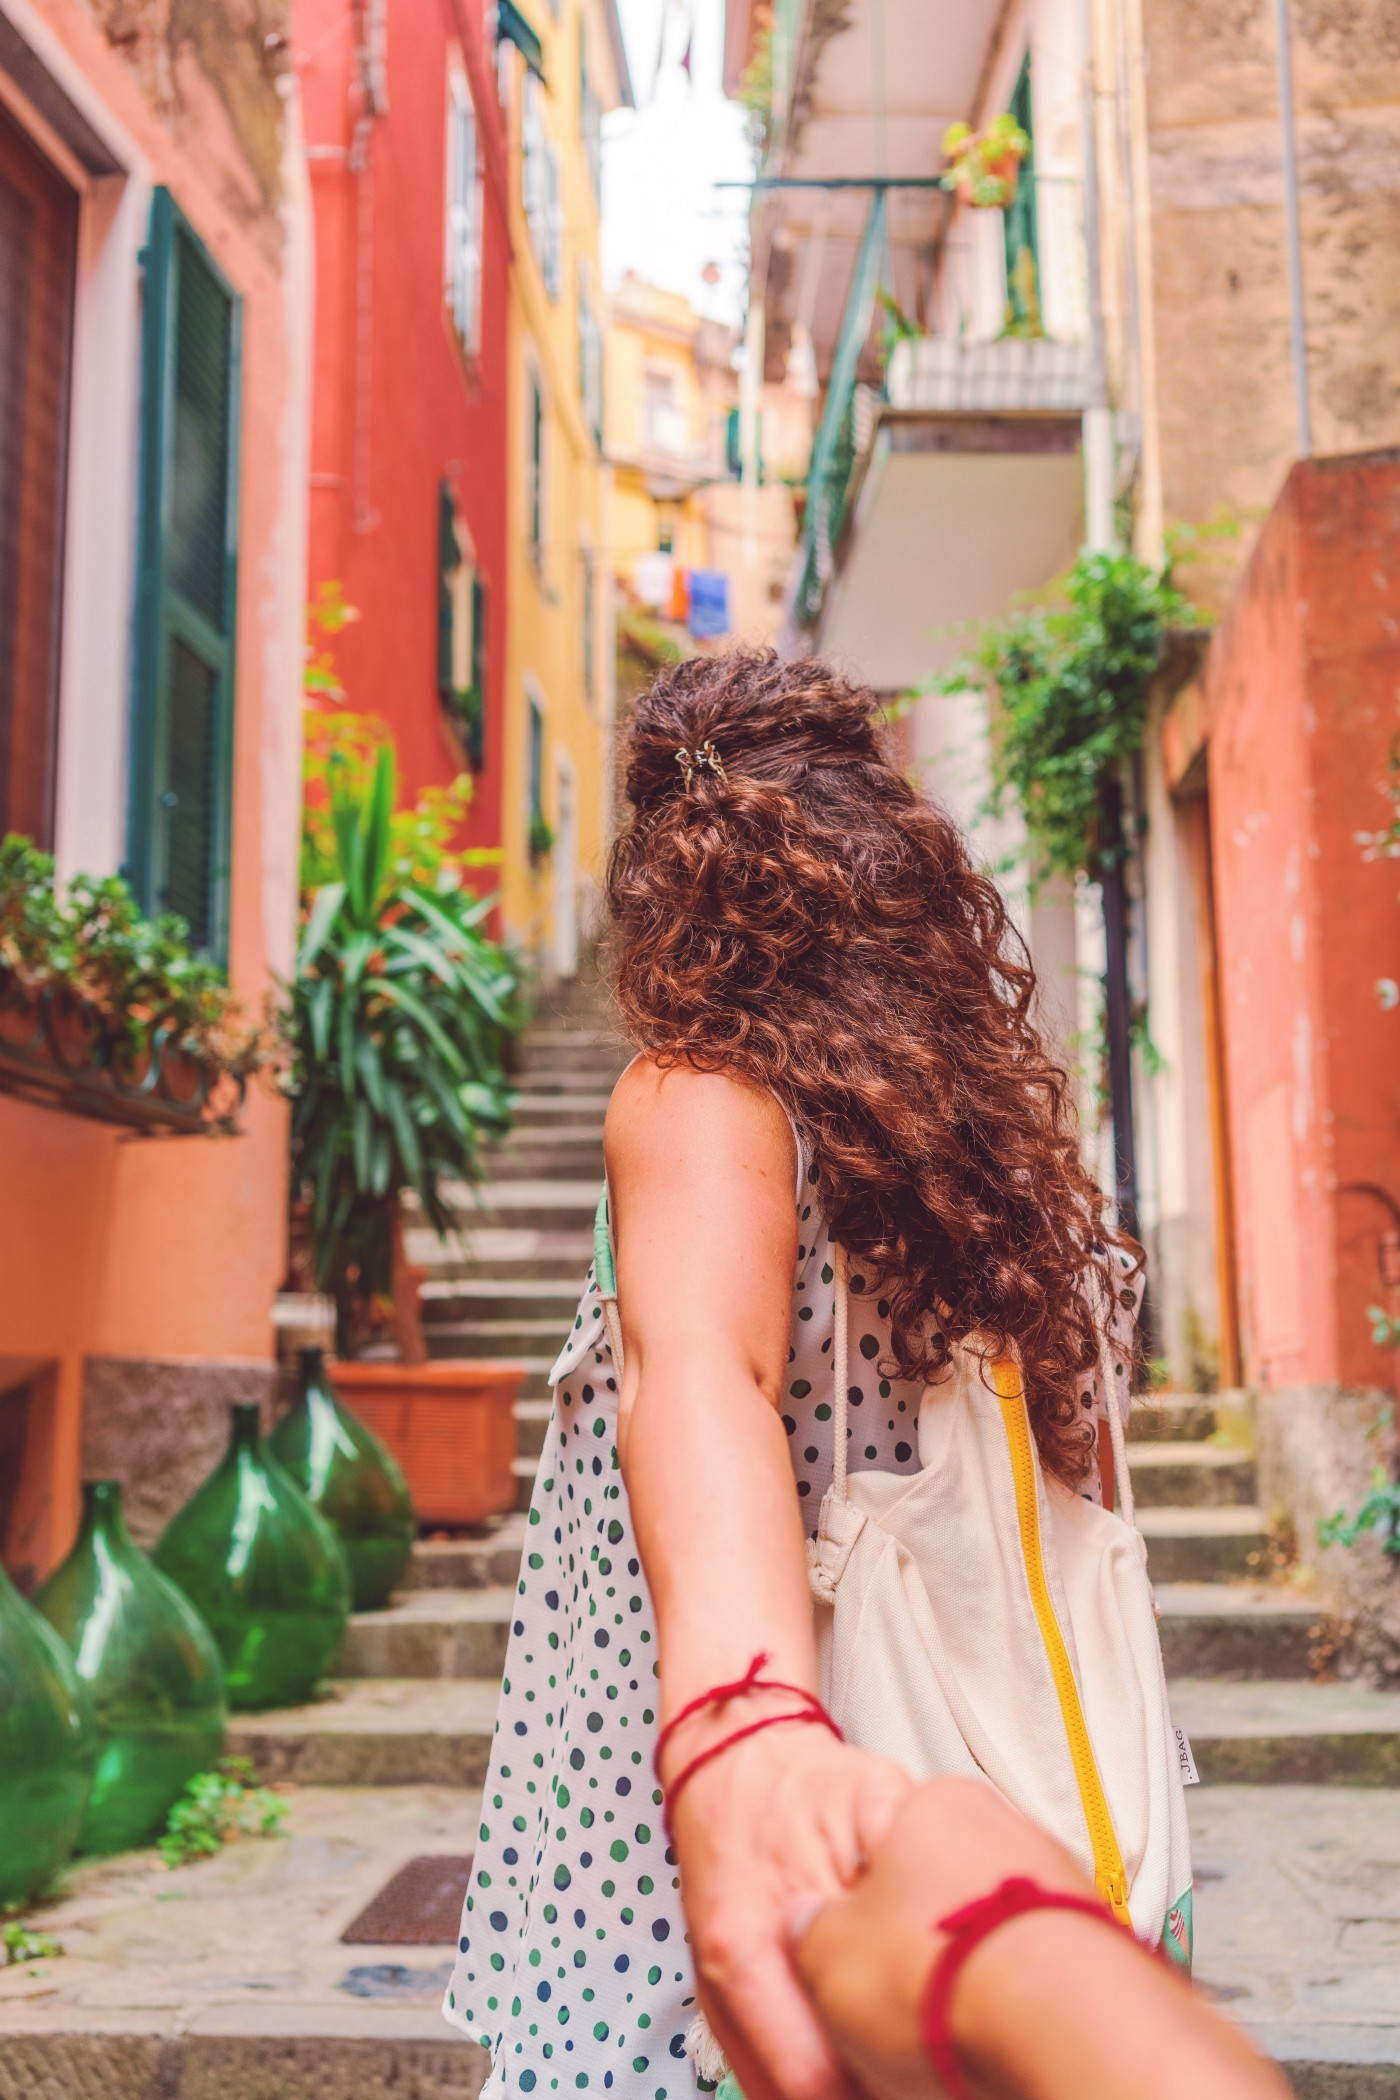 Woman in colorful alleyway, reaching back to hold the hand of the photographer